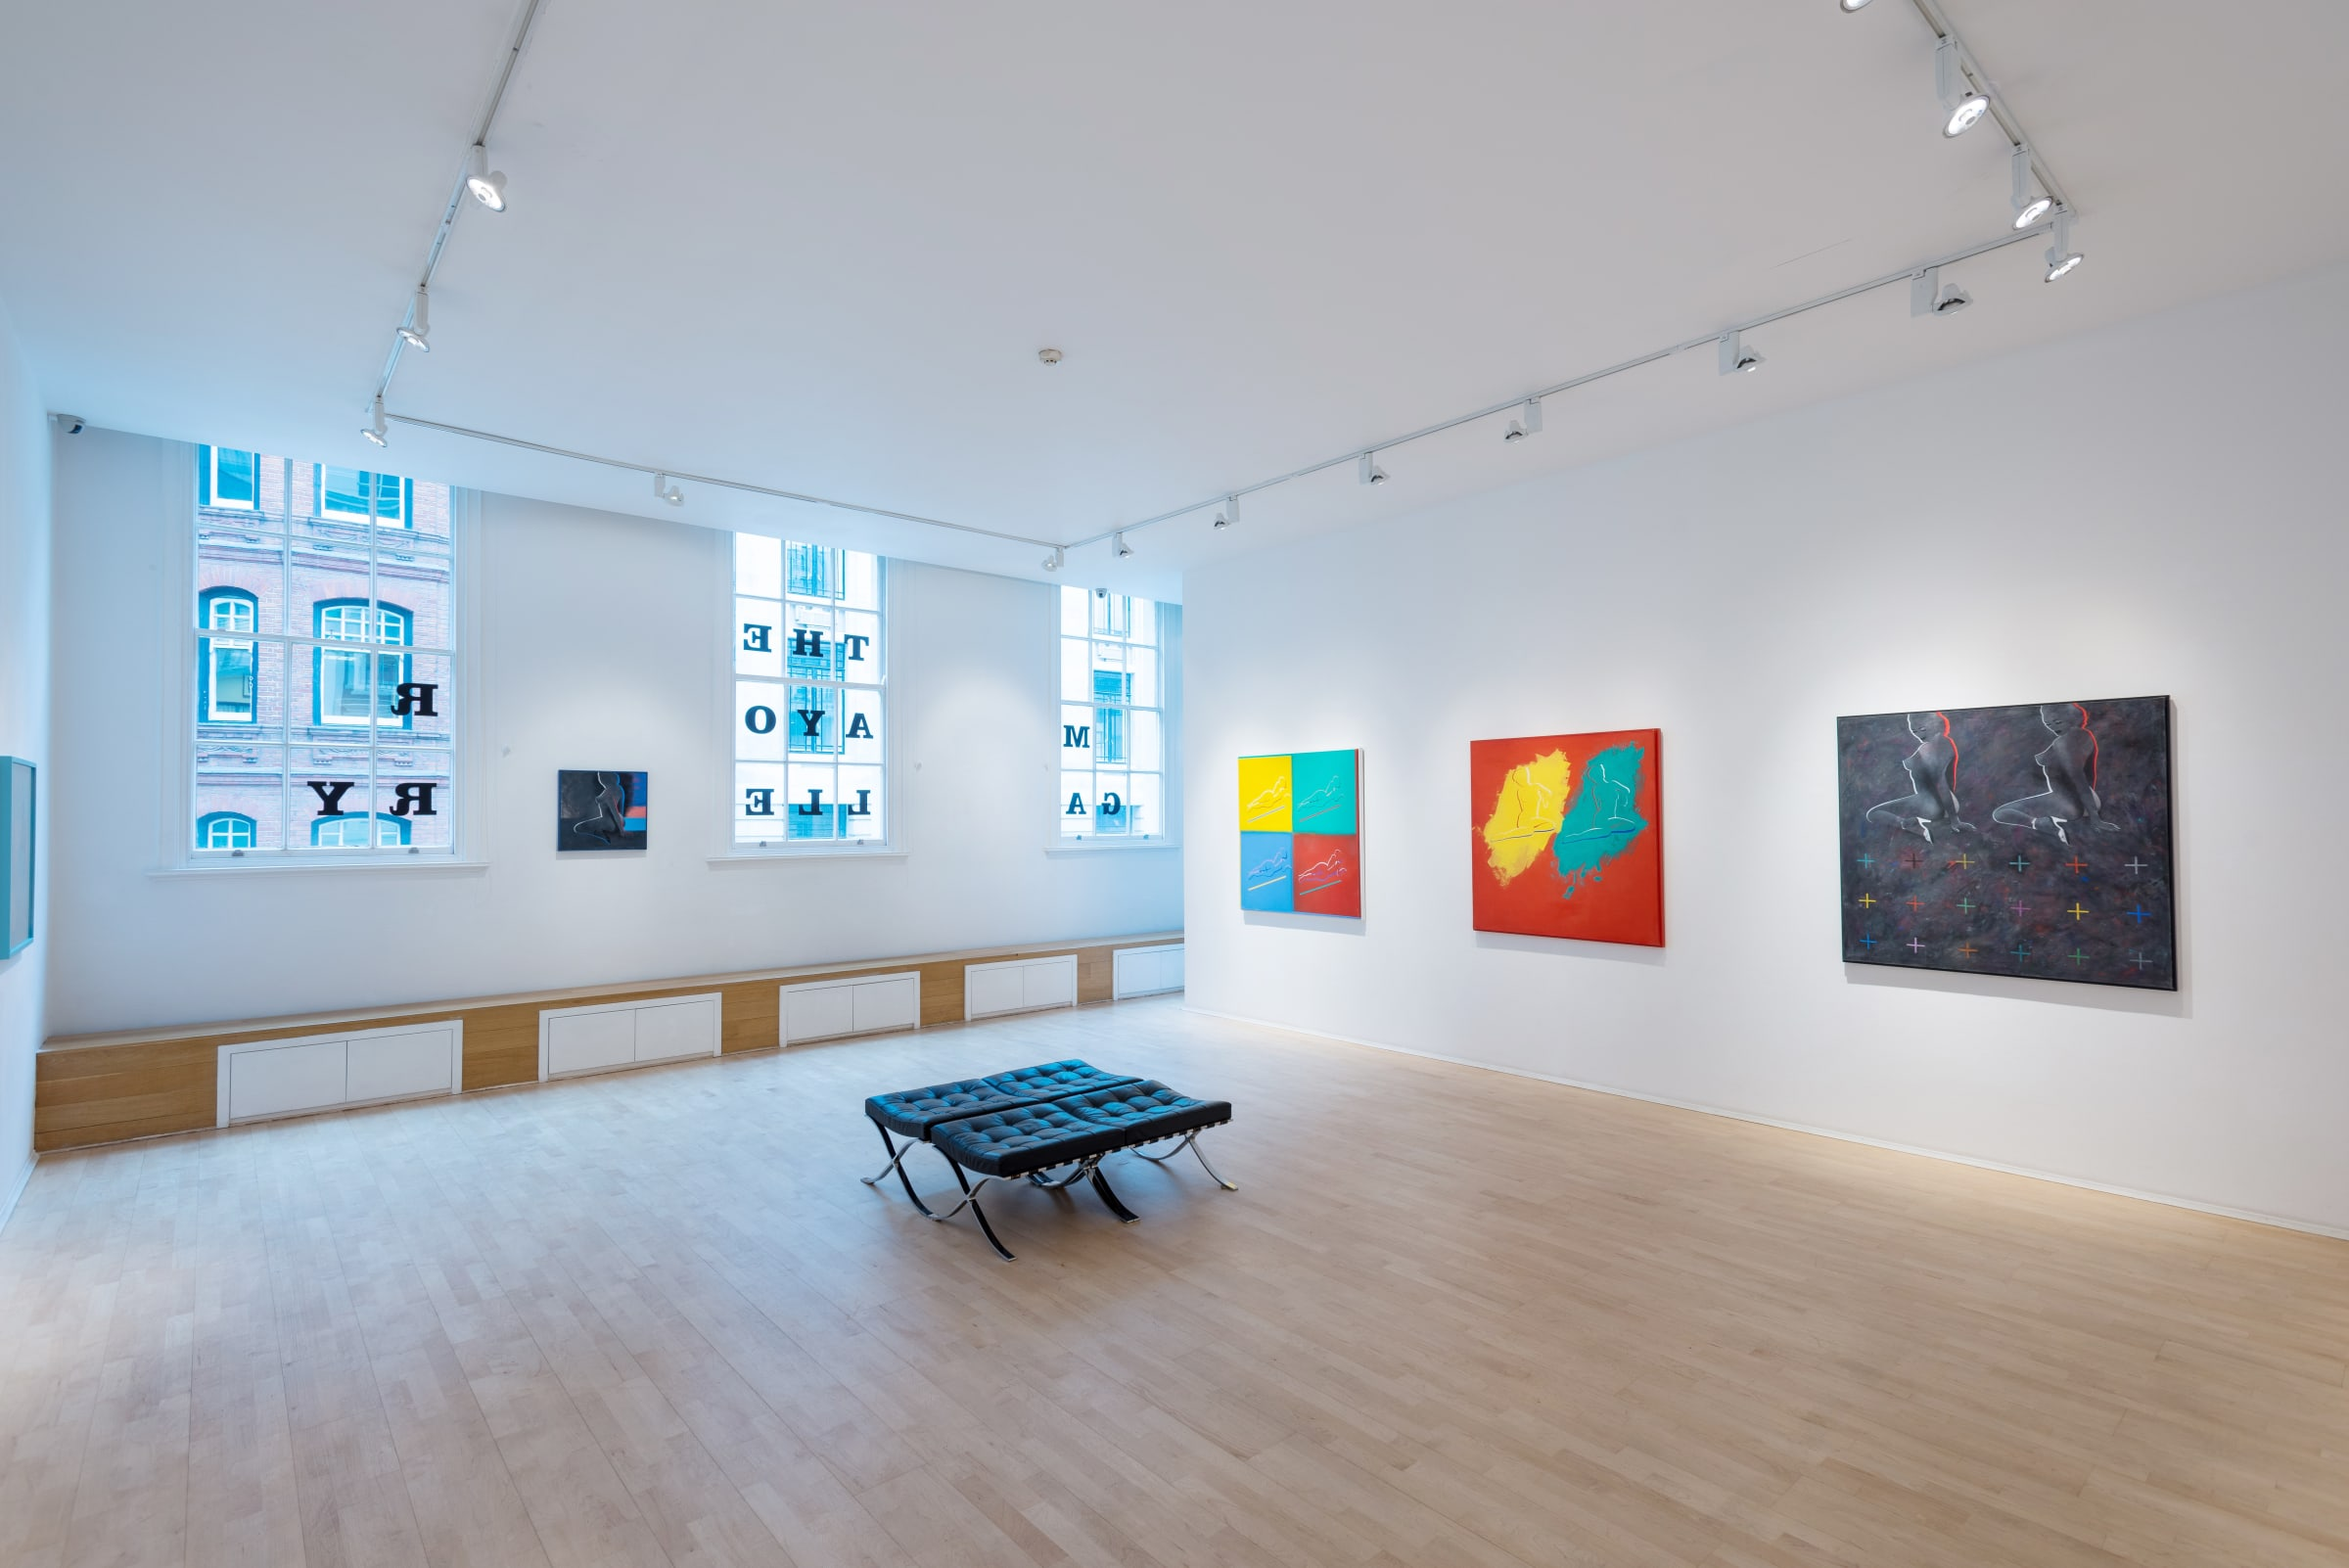 """<span class=""""link fancybox-details-link""""><a href=""""/exhibitions/318/works/image_standalone1623/"""">View Detail Page</a></span><p><strong>ANTONY DONALDSON</strong>   OF MEMORY OF OBLIVION   09 SEP - 09 OCT 2015   Installation view</p>"""